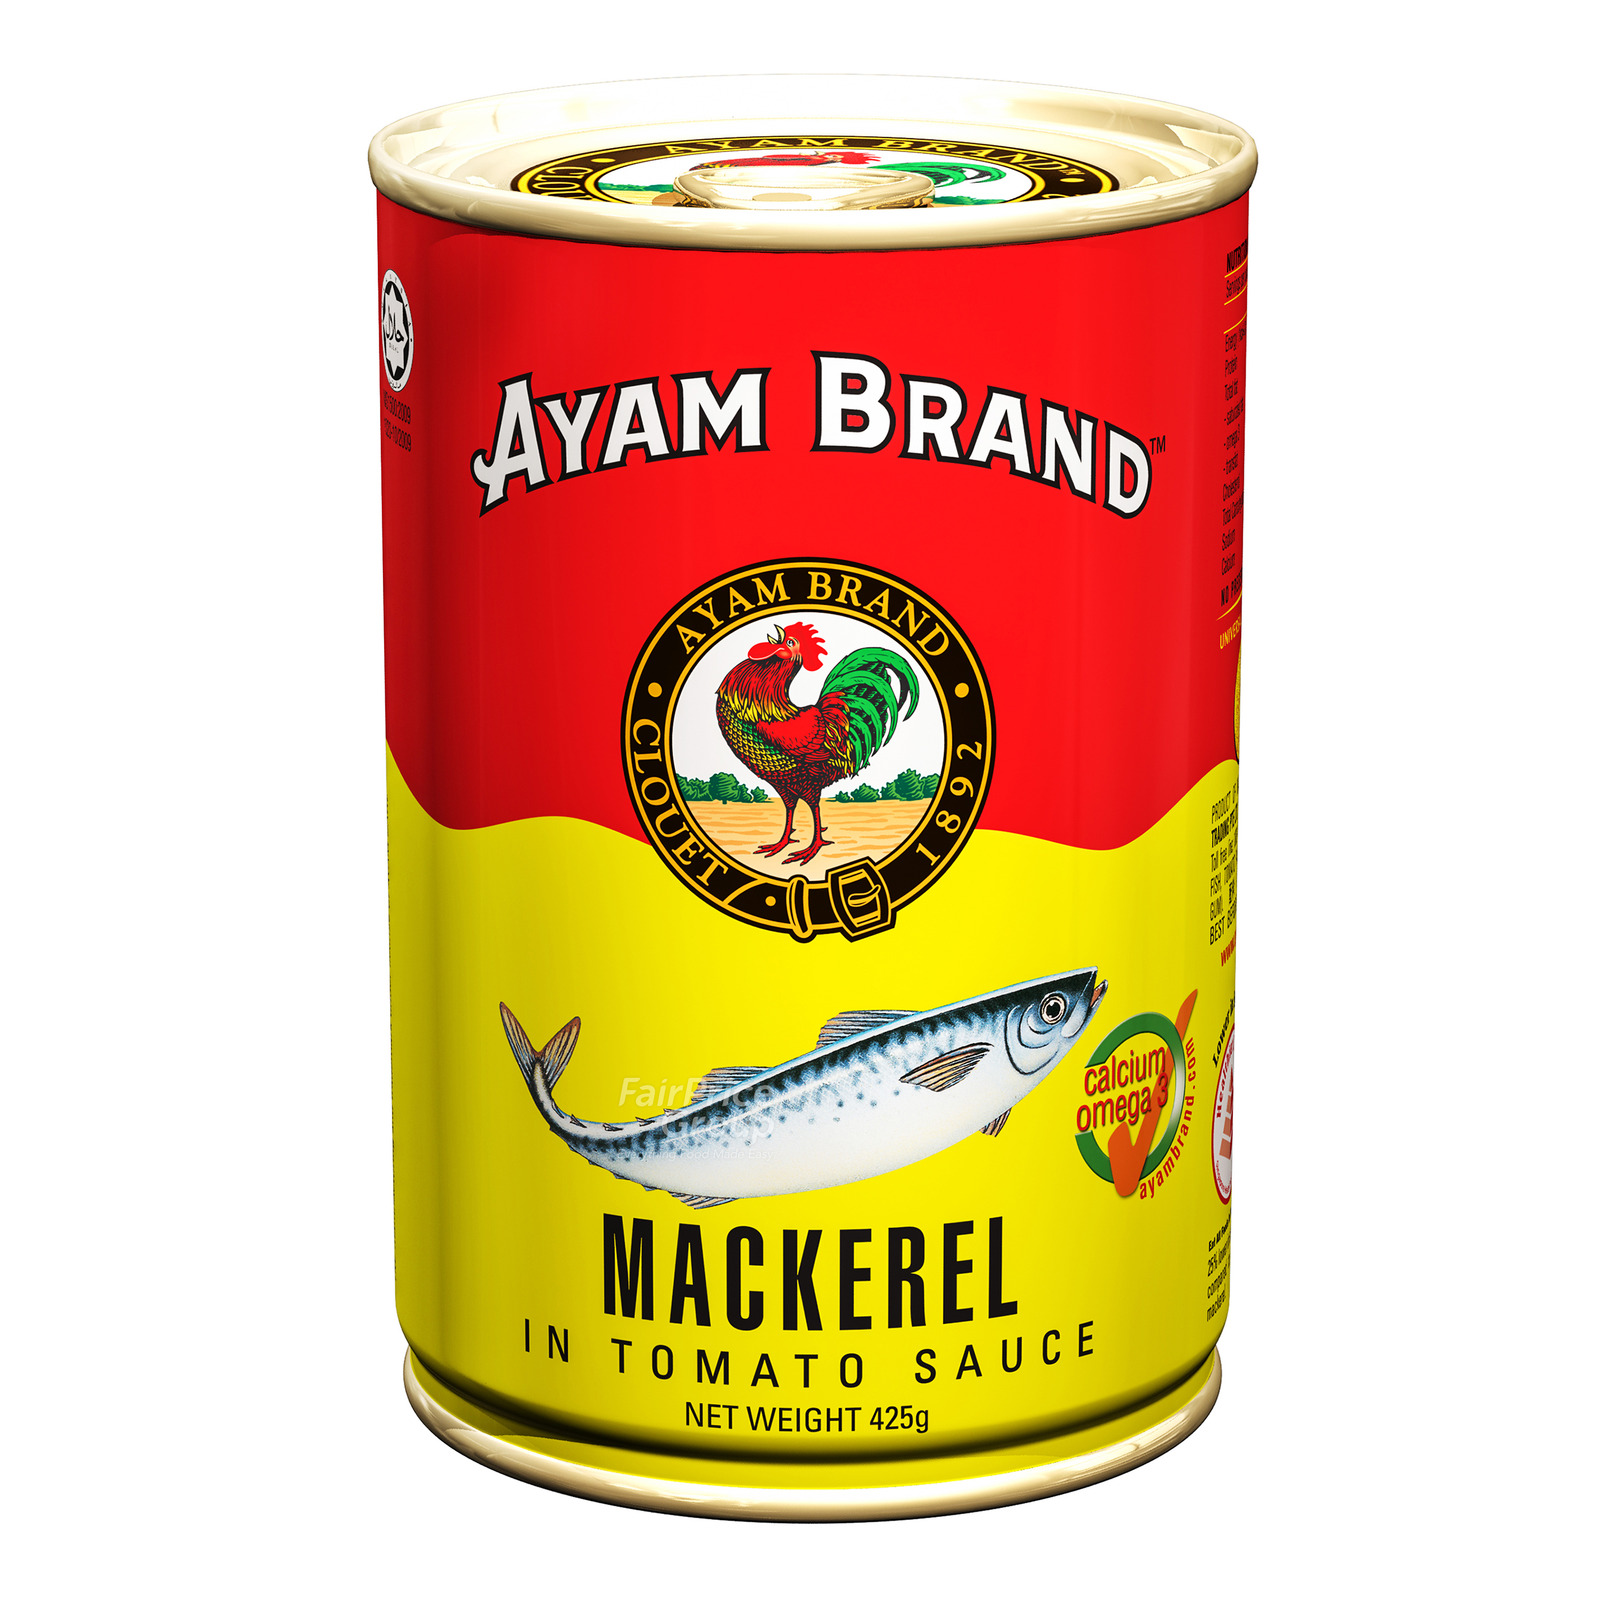 Ayam Brand Mackerel in Tomato Sauce